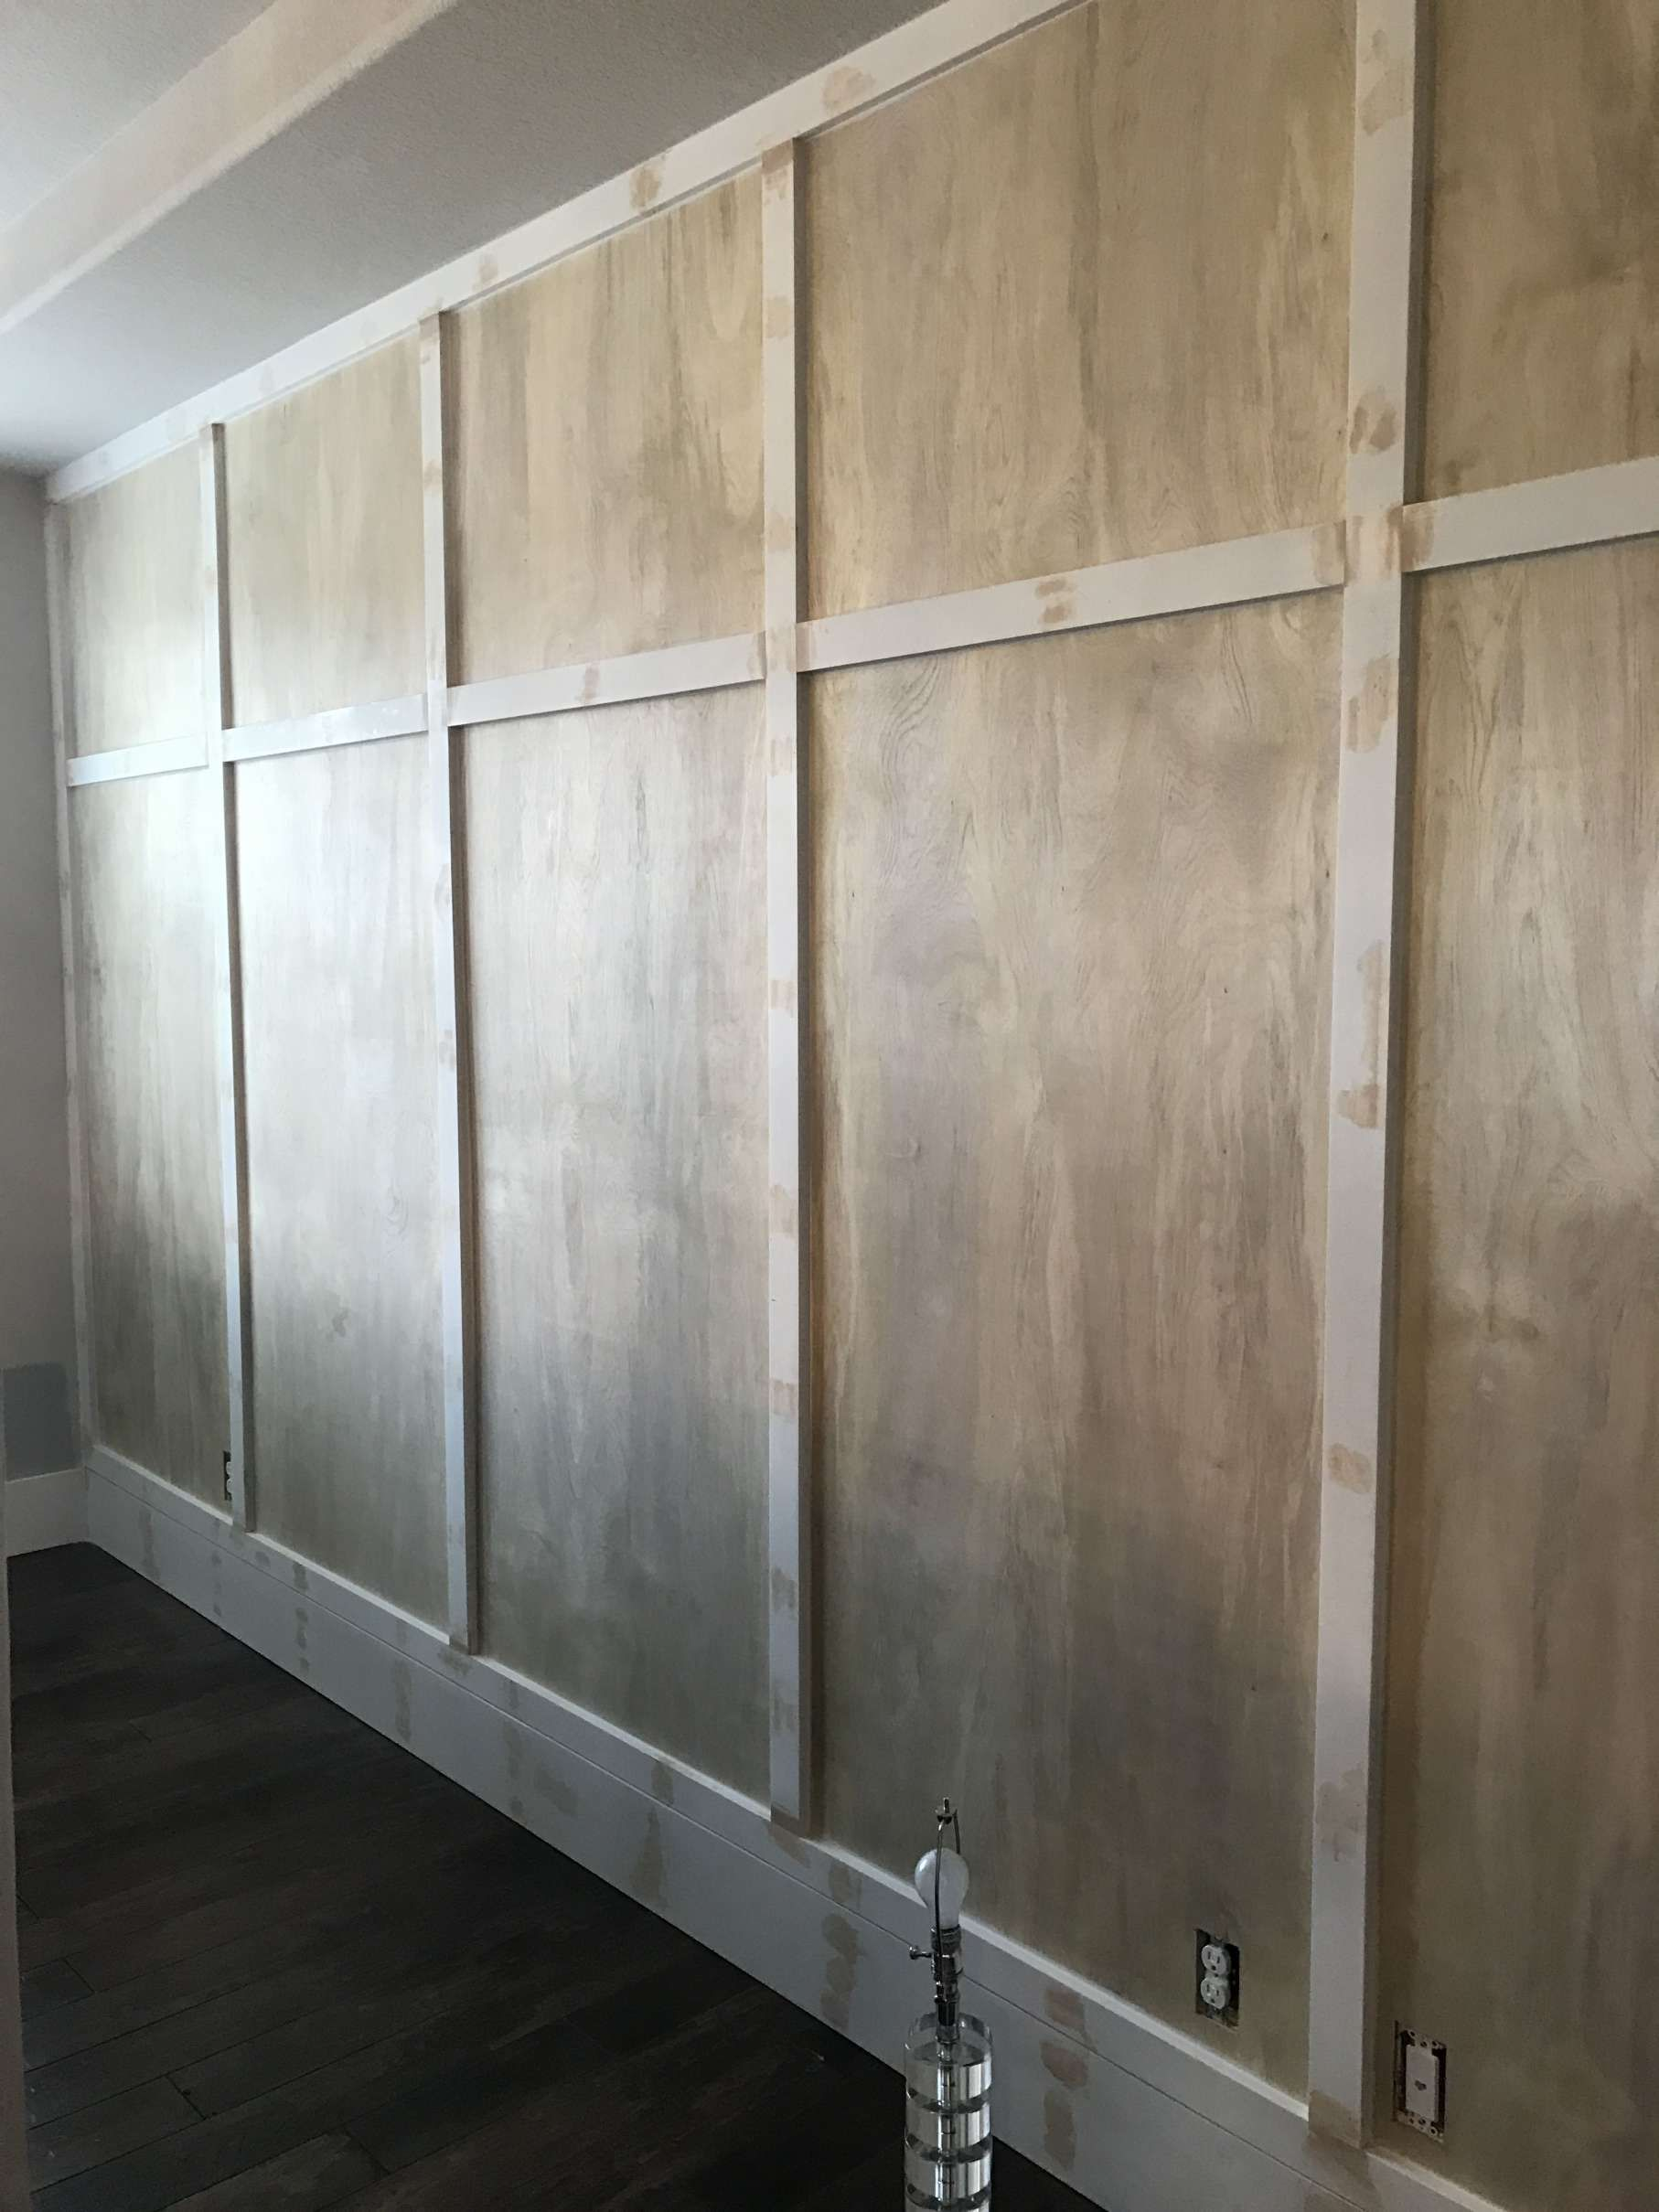 7 Extraordinary Covering Garage Walls With Plywood Collection